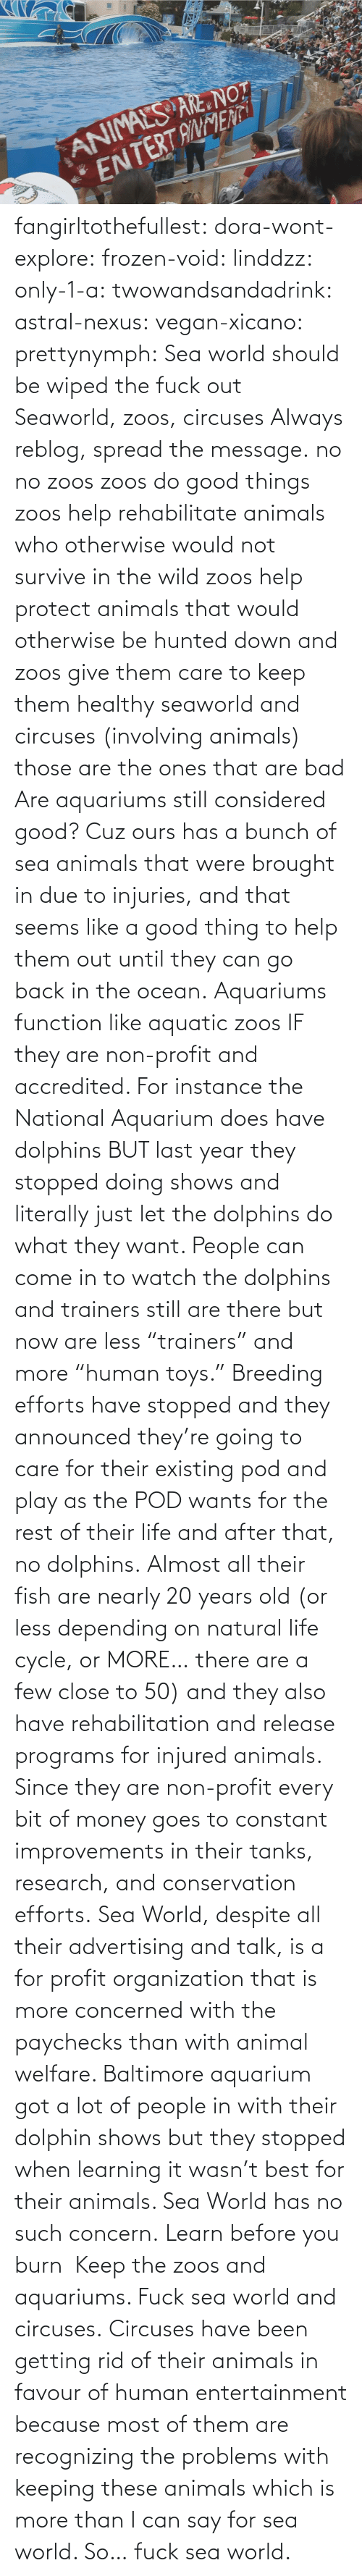 "Due: fangirltothefullest:  dora-wont-explore:  frozen-void:  linddzz:  only-1-a:  twowandsandadrink:  astral-nexus:  vegan-xicano:  prettynymph:  Sea world should be wiped the fuck out  Seaworld, zoos, circuses  Always reblog, spread the message.  no no zoos zoos do good things zoos help rehabilitate animals who otherwise would not survive in the wild zoos help protect animals that would otherwise be hunted down and zoos give them care to keep them healthy seaworld and circuses (involving animals) those are the ones that are bad  Are aquariums still considered good? Cuz ours has a bunch of sea animals that were brought in due to injuries, and that seems like a good thing to help them out until they can go back in the ocean.  Aquariums function like aquatic zoos IF they are non-profit and accredited. For instance the National Aquarium does have dolphins BUT last year they stopped doing shows and literally just let the dolphins do what they want. People can come in to watch the dolphins and trainers still are there but now are less ""trainers"" and more ""human toys."" Breeding efforts have stopped and they announced they're going to care for their existing pod and play as the POD wants for the rest of their life and after that, no dolphins. Almost all their fish are nearly 20 years old (or less depending on natural life cycle, or MORE… there are a few close to 50) and they also have rehabilitation and release programs for injured animals. Since they are non-profit every bit of money goes to constant improvements in their tanks, research, and conservation efforts. Sea World, despite all their advertising and talk, is a for profit organization that is more concerned with the paychecks than with animal welfare. Baltimore aquarium got a lot of people in with their dolphin shows but they stopped when learning it wasn't best for their animals. Sea World has no such concern.  Learn before you burn   Keep the zoos and aquariums. Fuck sea world and circuses.  Circuses have been getting rid of  their animals in favour of human entertainment because most of them are recognizing the problems with keeping these animals which is more than I can say for sea world. So… fuck sea world."